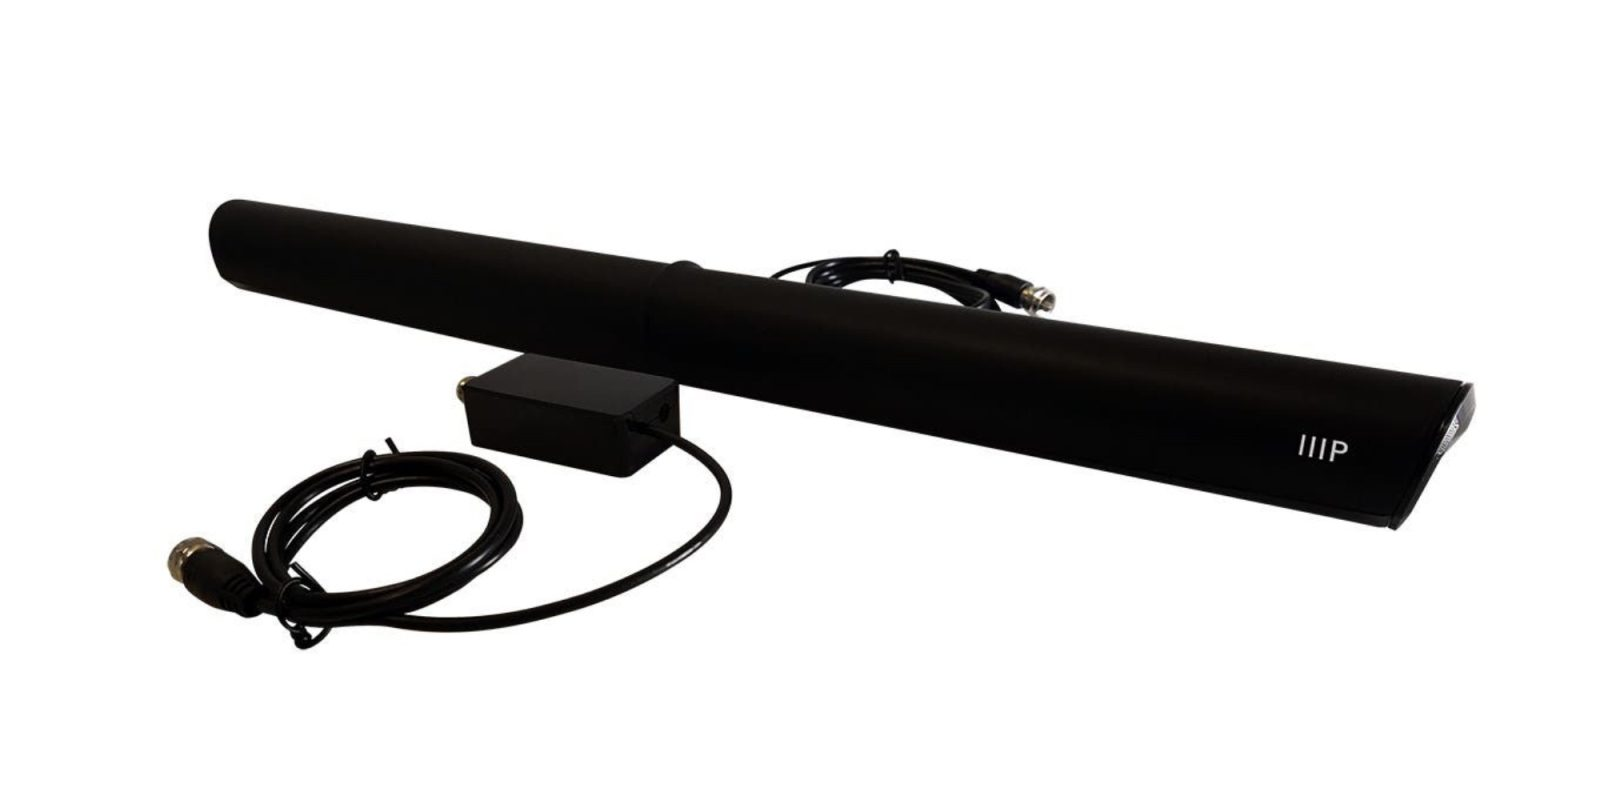 Cord-cutters can save 20% on Monoprice's Active 60-Mile HDTV Antenna at $17.50